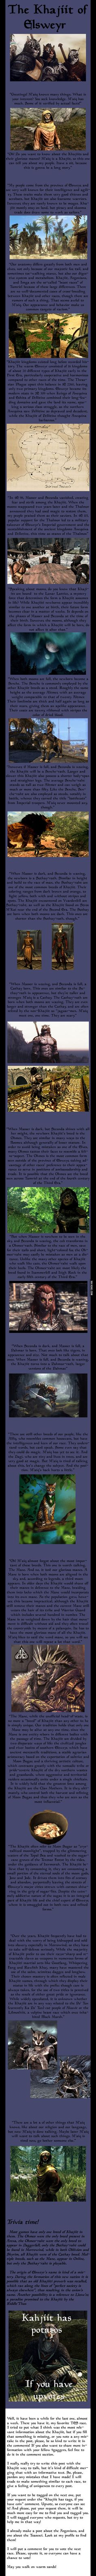 The Elder Scrolls Races: Khajiit (Warning: Long Post)